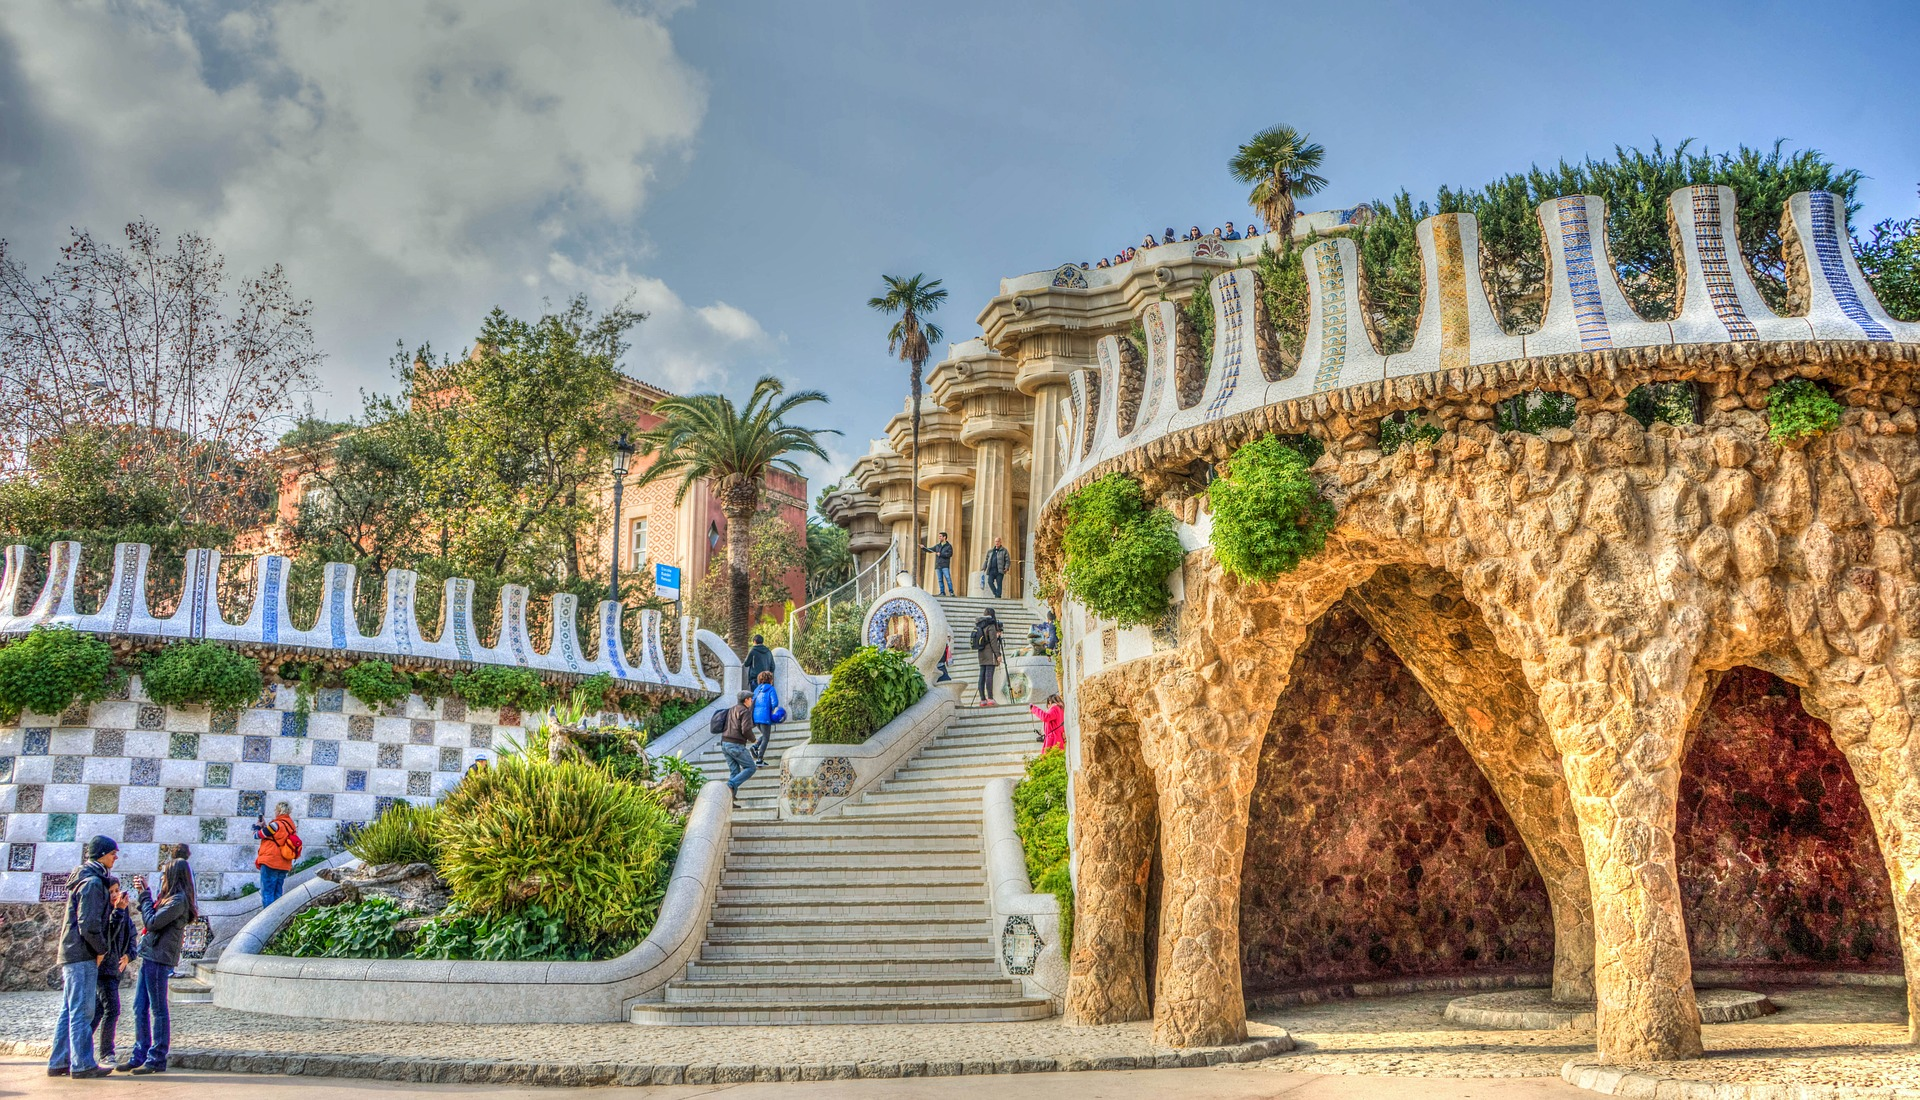 The colorful curves of Park Güell are like something out of a Dr. Seuss book